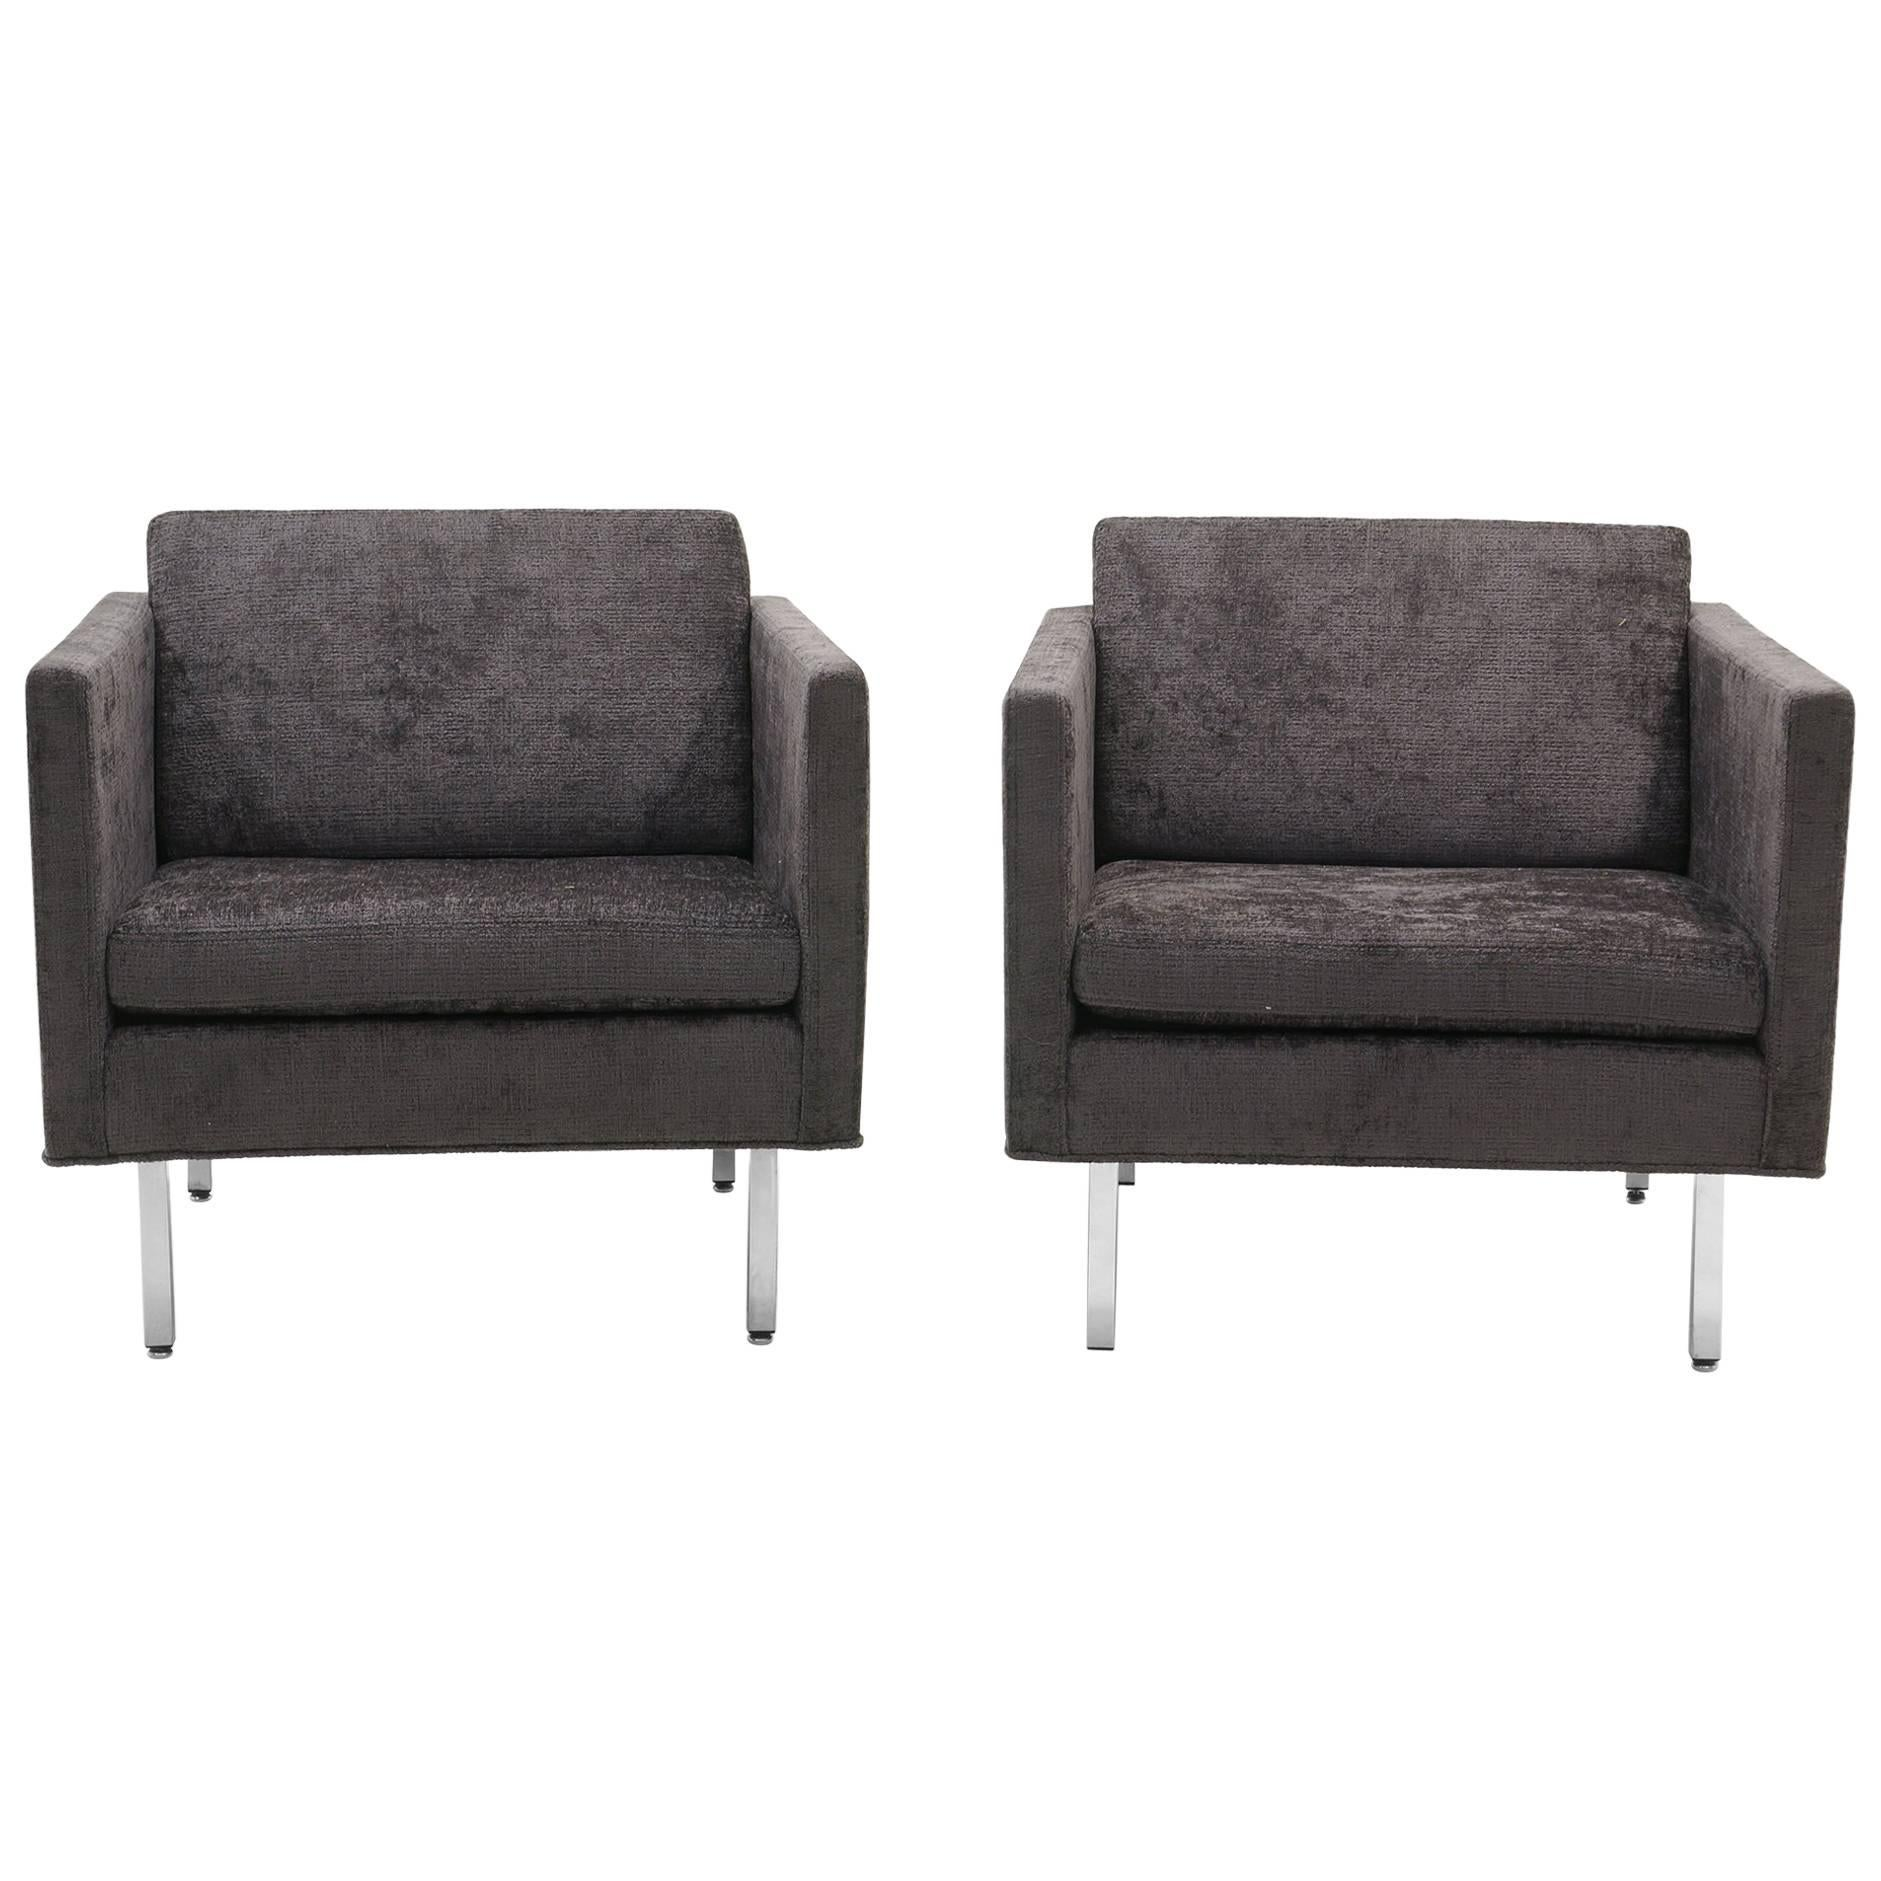 Pair Of Milo Baughman Club Chairs, Robert Allen Chenille And Chrome Legs  For Sale